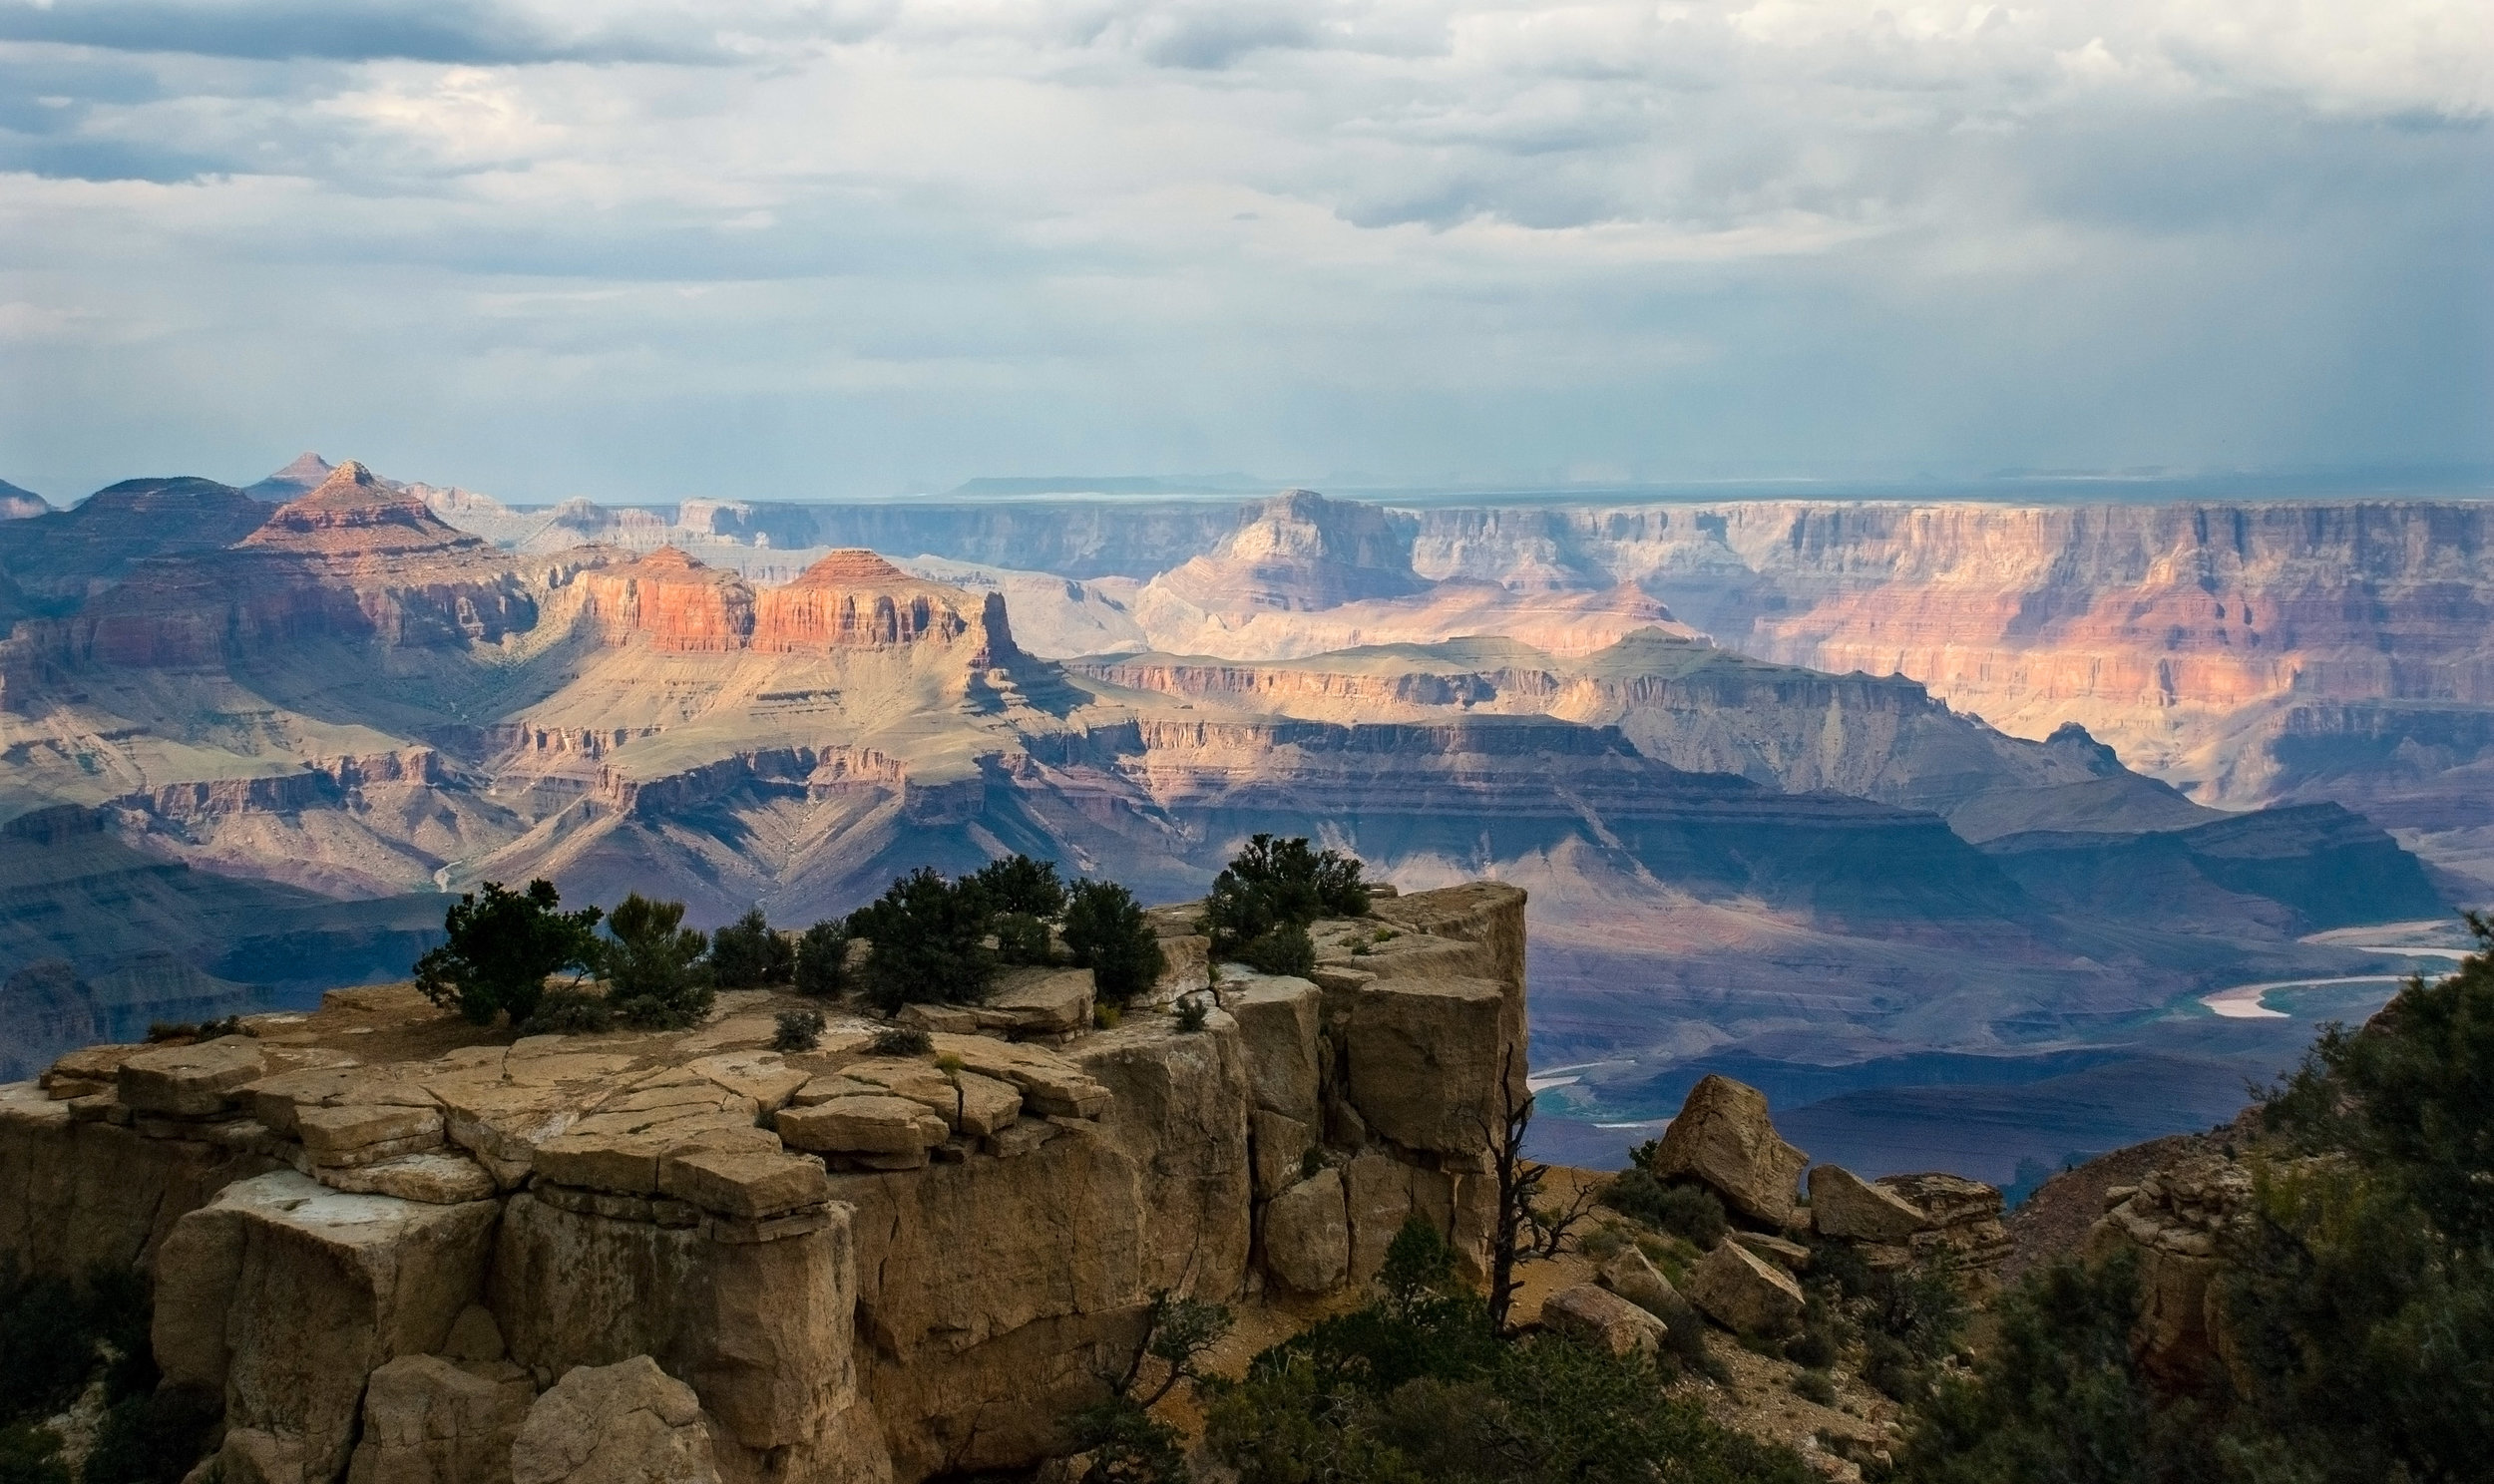 Grand Canyon Tour - Complete your trip with our amazing discount on tours to the breathtaking Grand Canyon and Four Corners with our luxury partner, Grand Canyon All Star Tours.